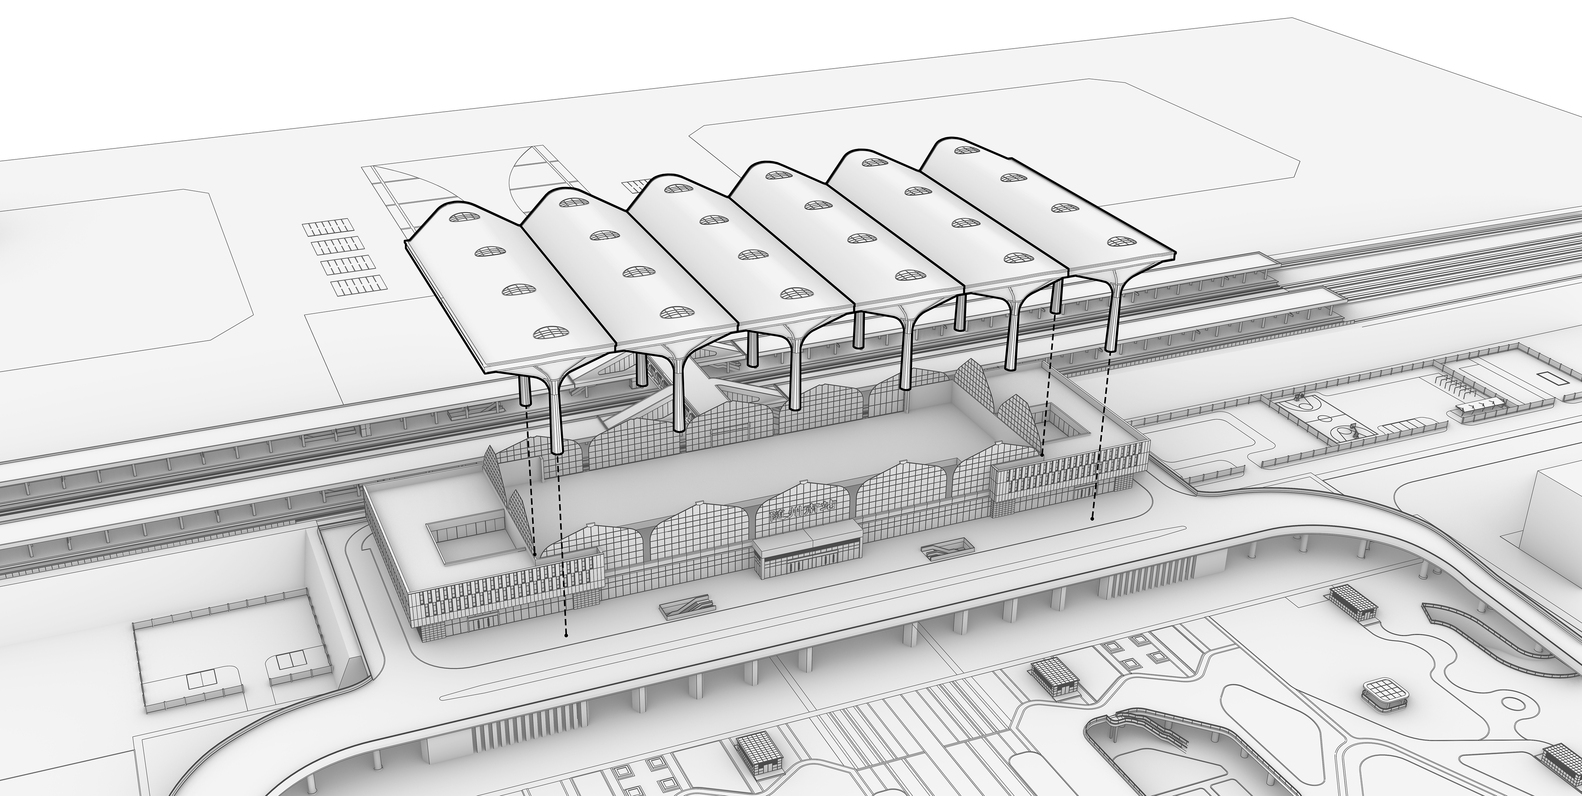 15 Transportation Architecture everyone should know about Sheet9